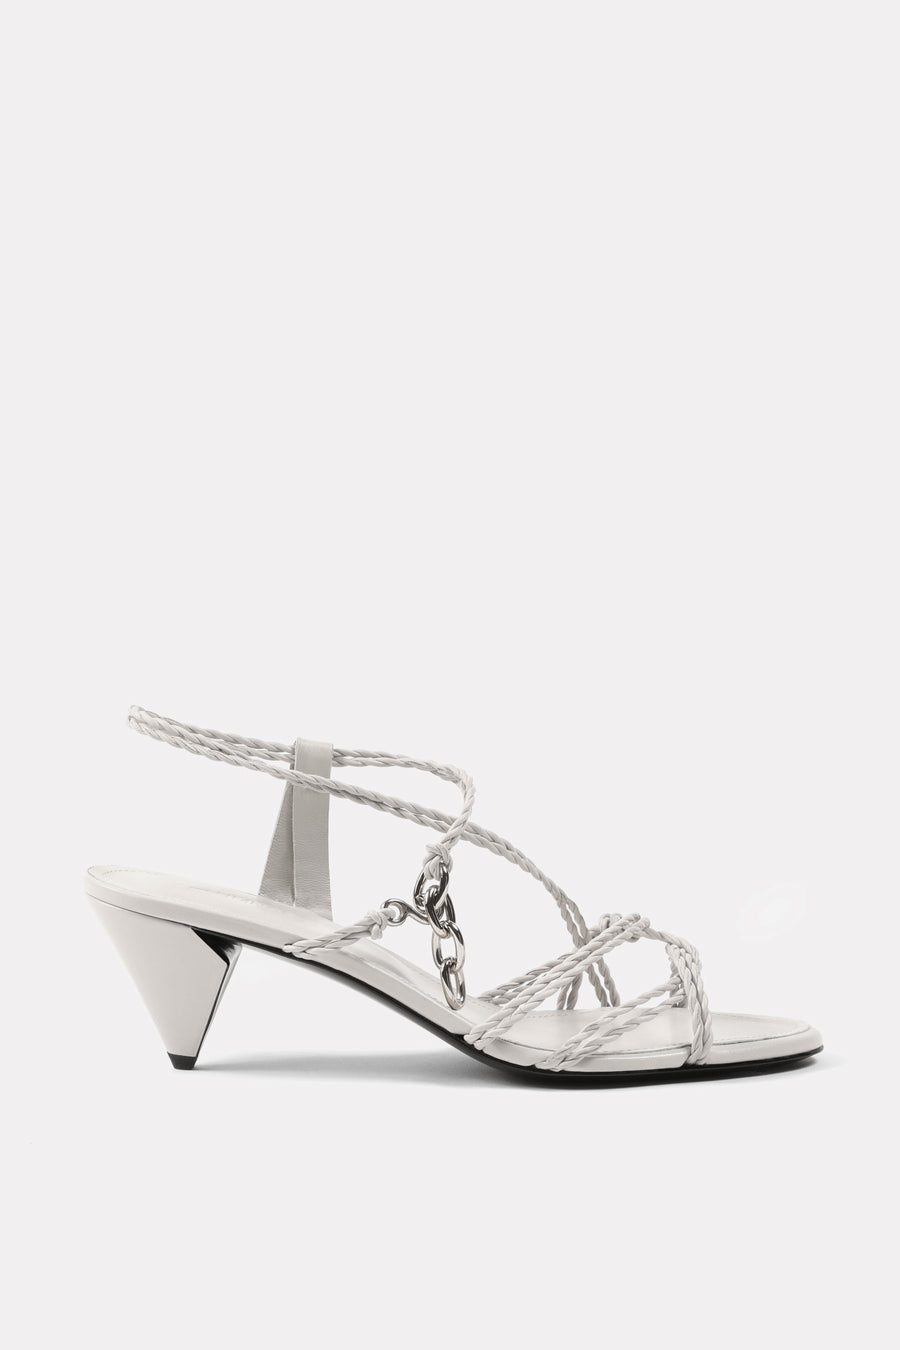 Mignon Twist Kitten Heel Sandal Chalk White.